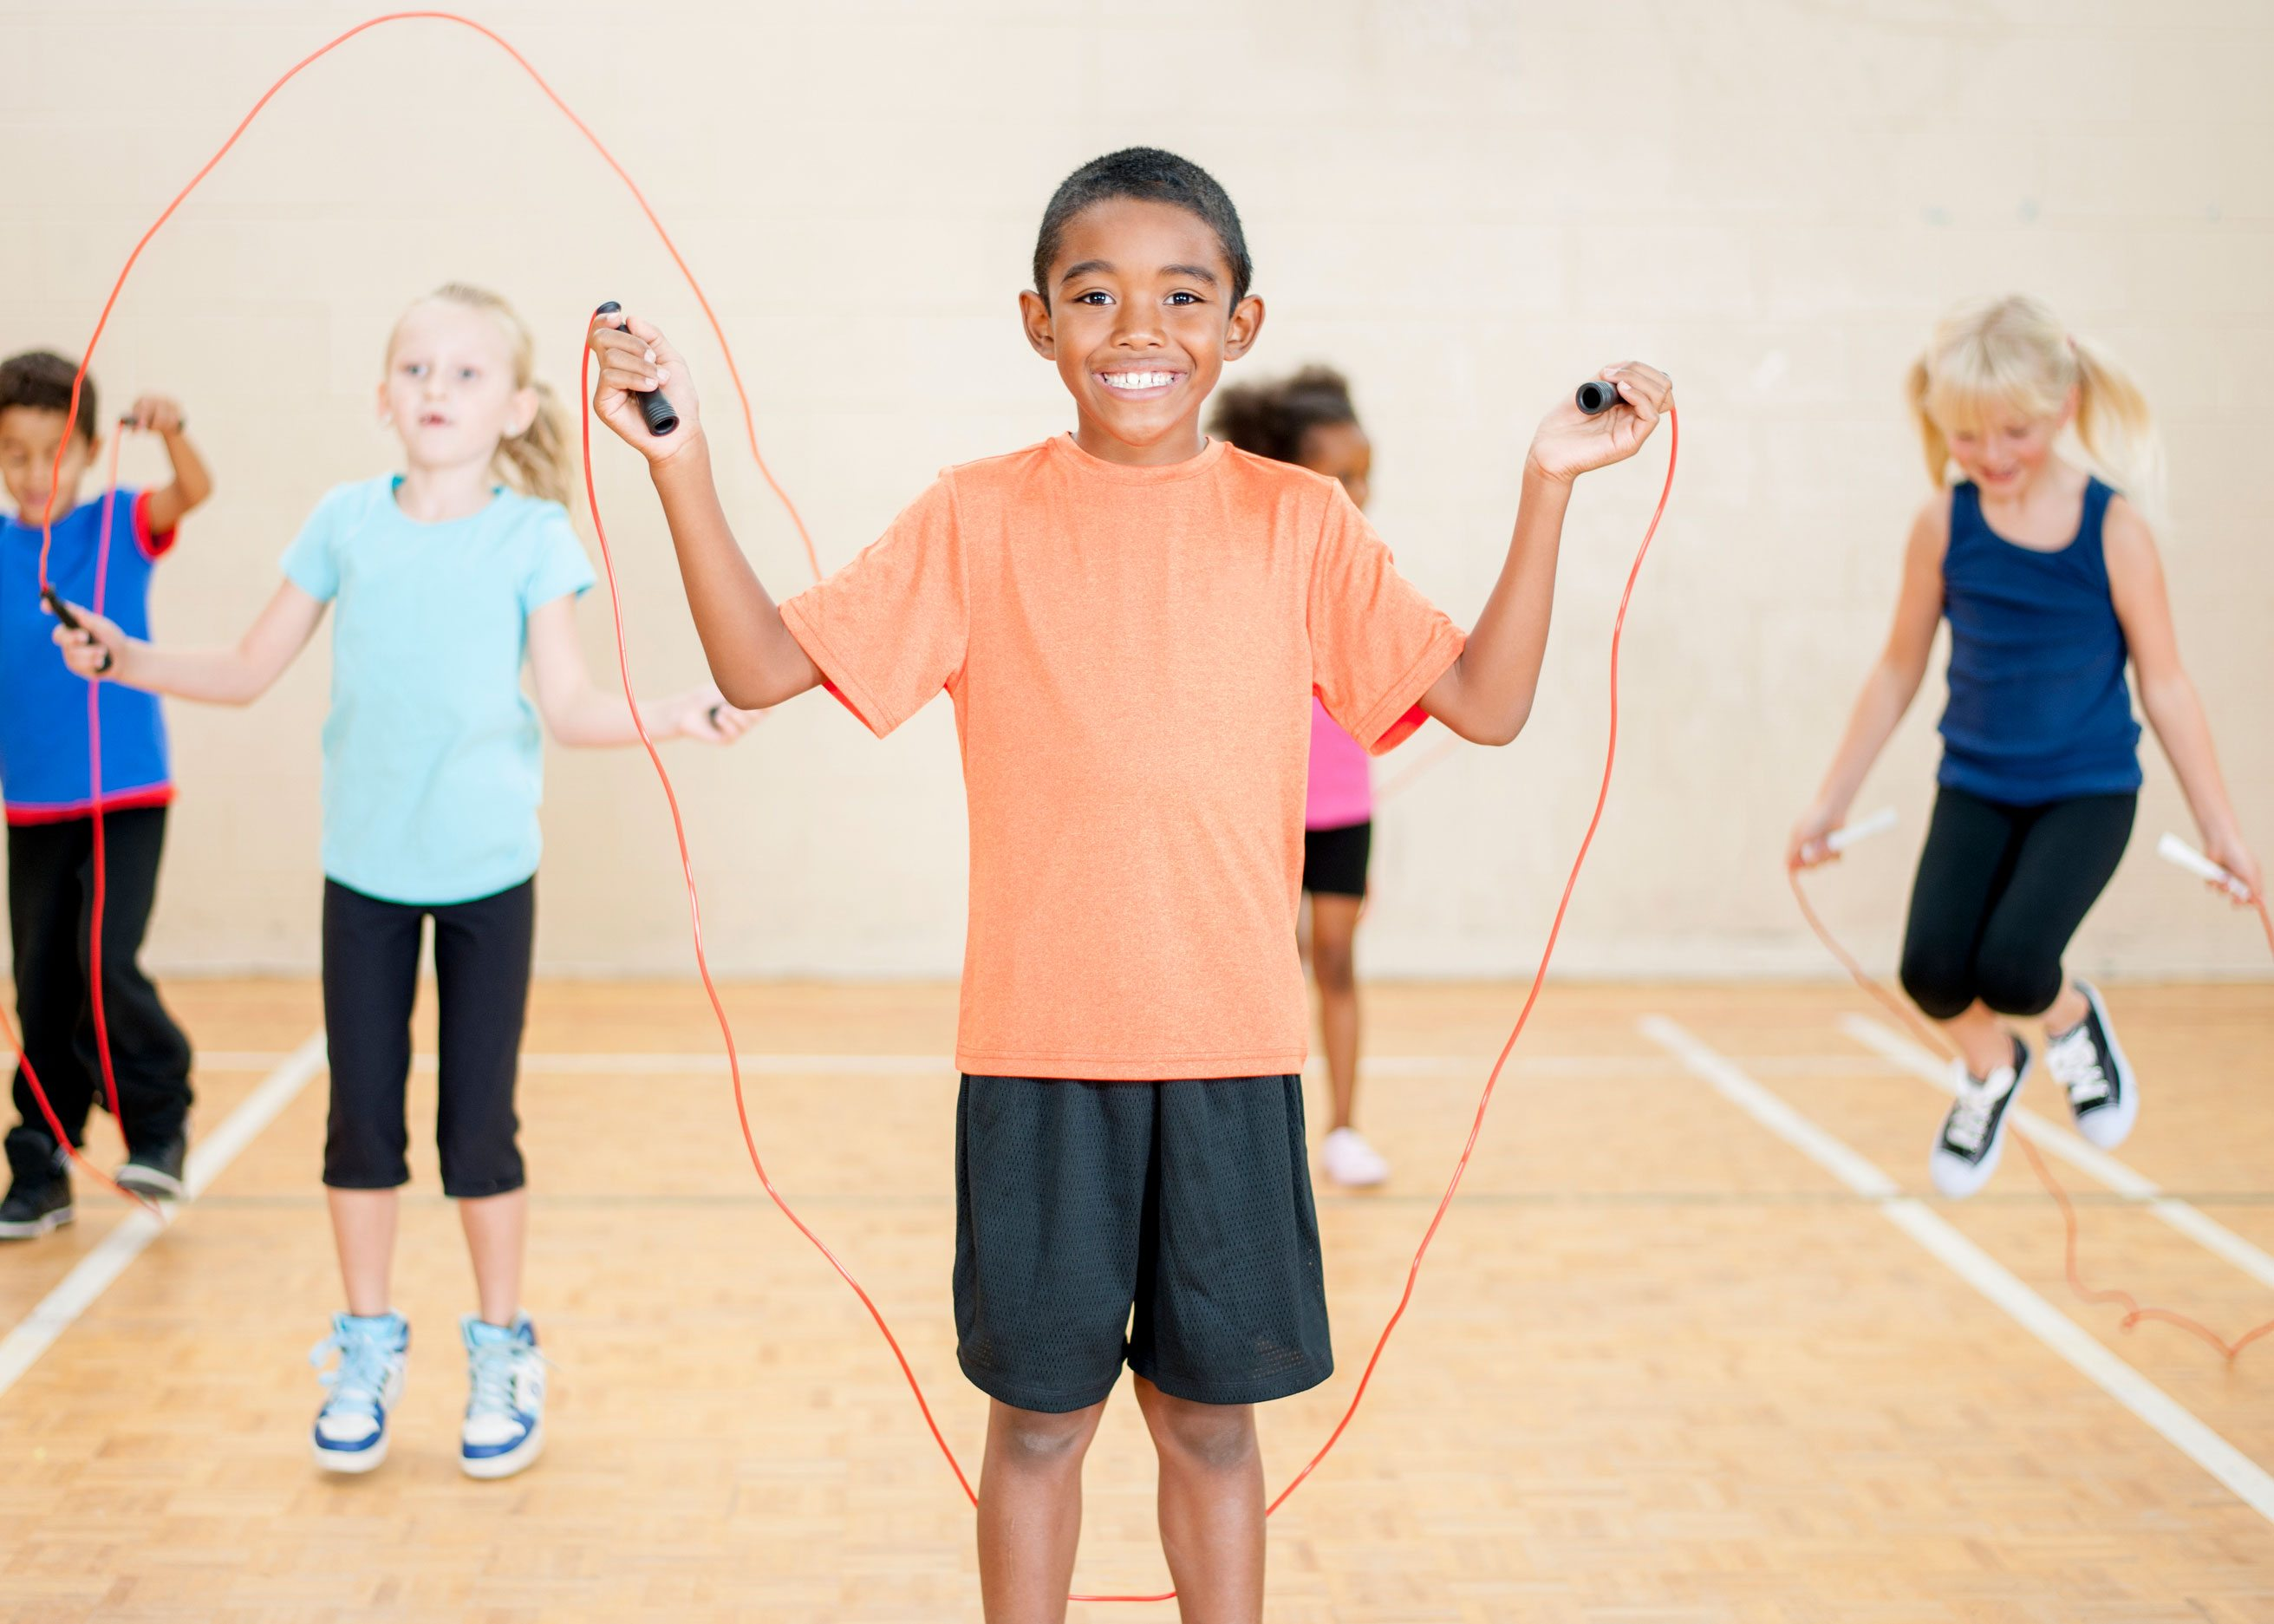 Happy child skipping rope in gym class